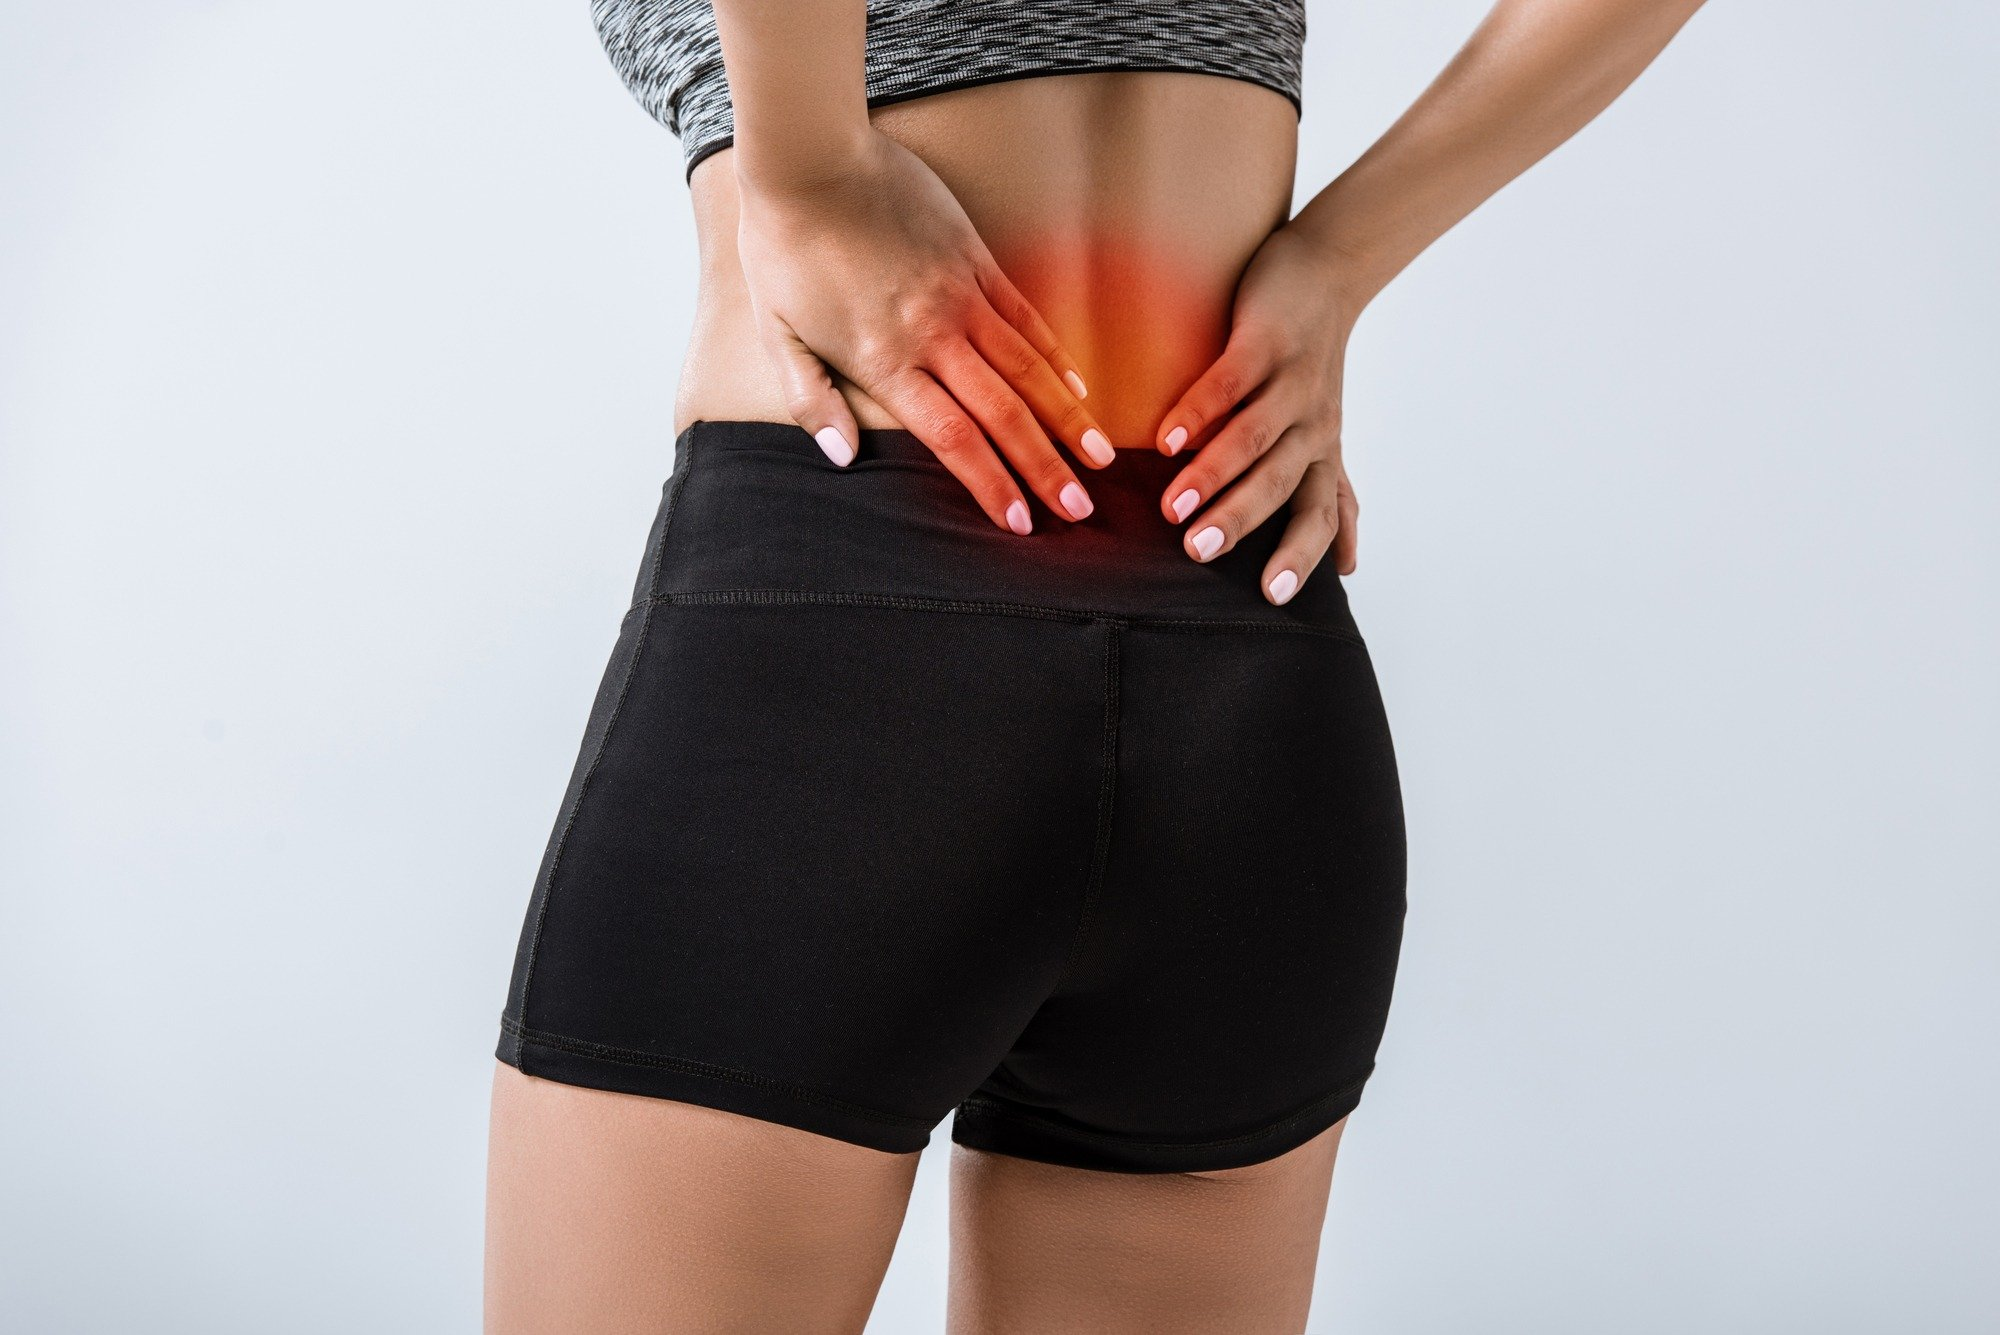 How Getting a Massage Can Help Manage Your Lower Back Pain